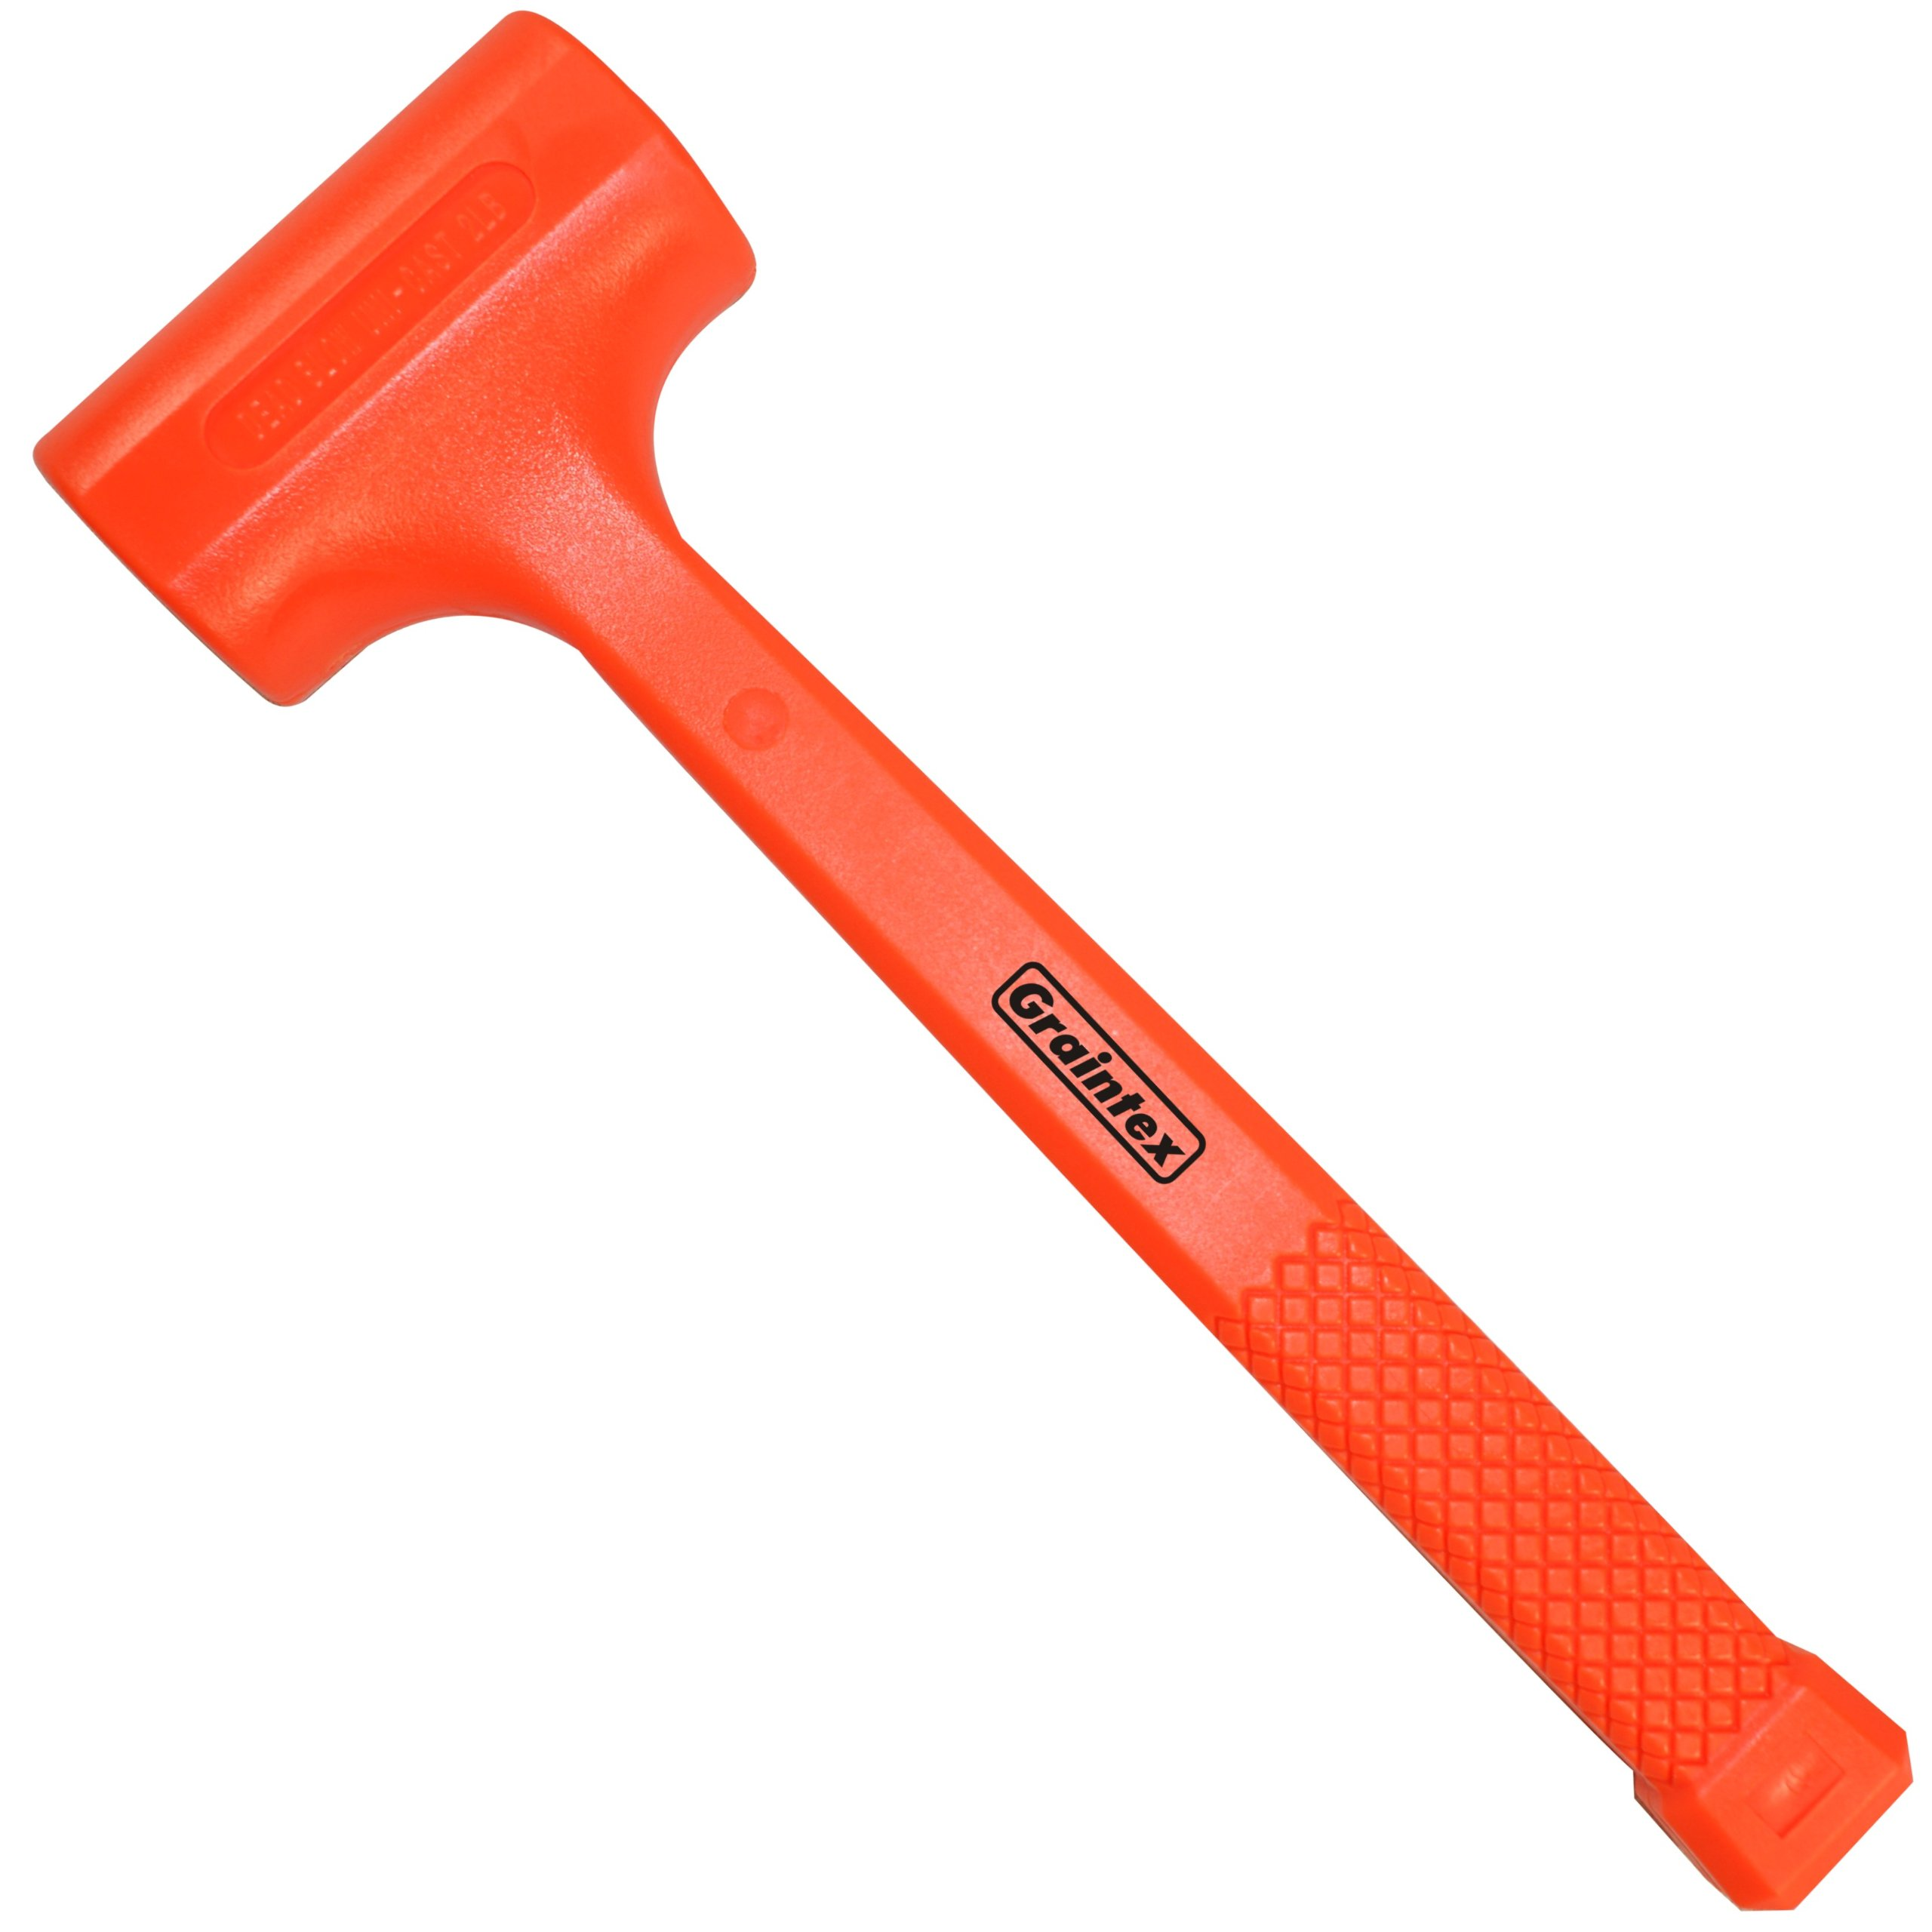 Graintex DB1459 Dead Blow Mallet, 4-Pound